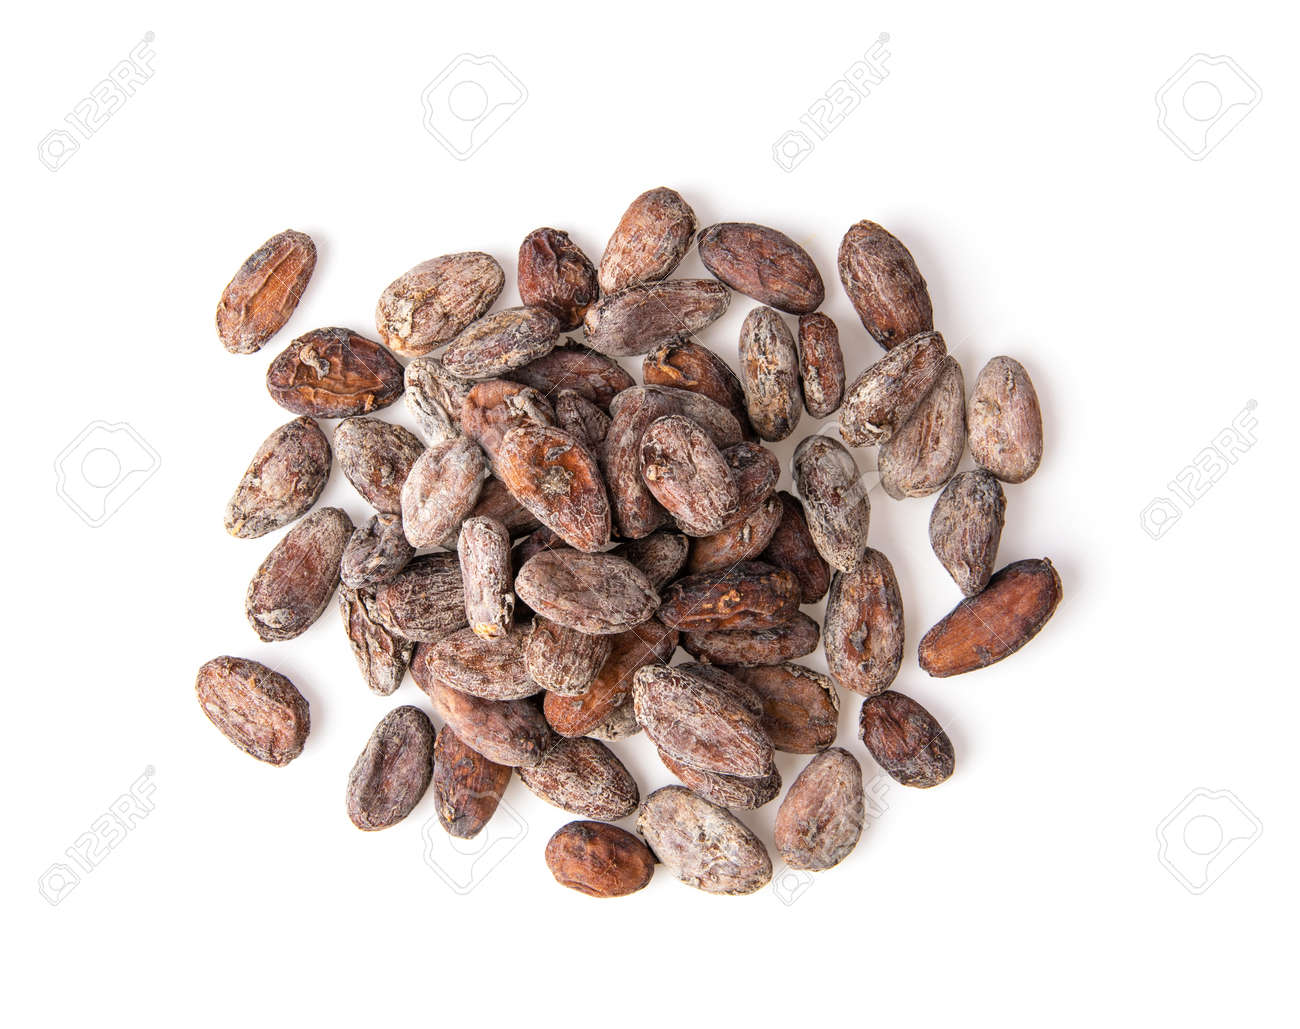 Pile of cocoa beans isolated on white background - 110849043